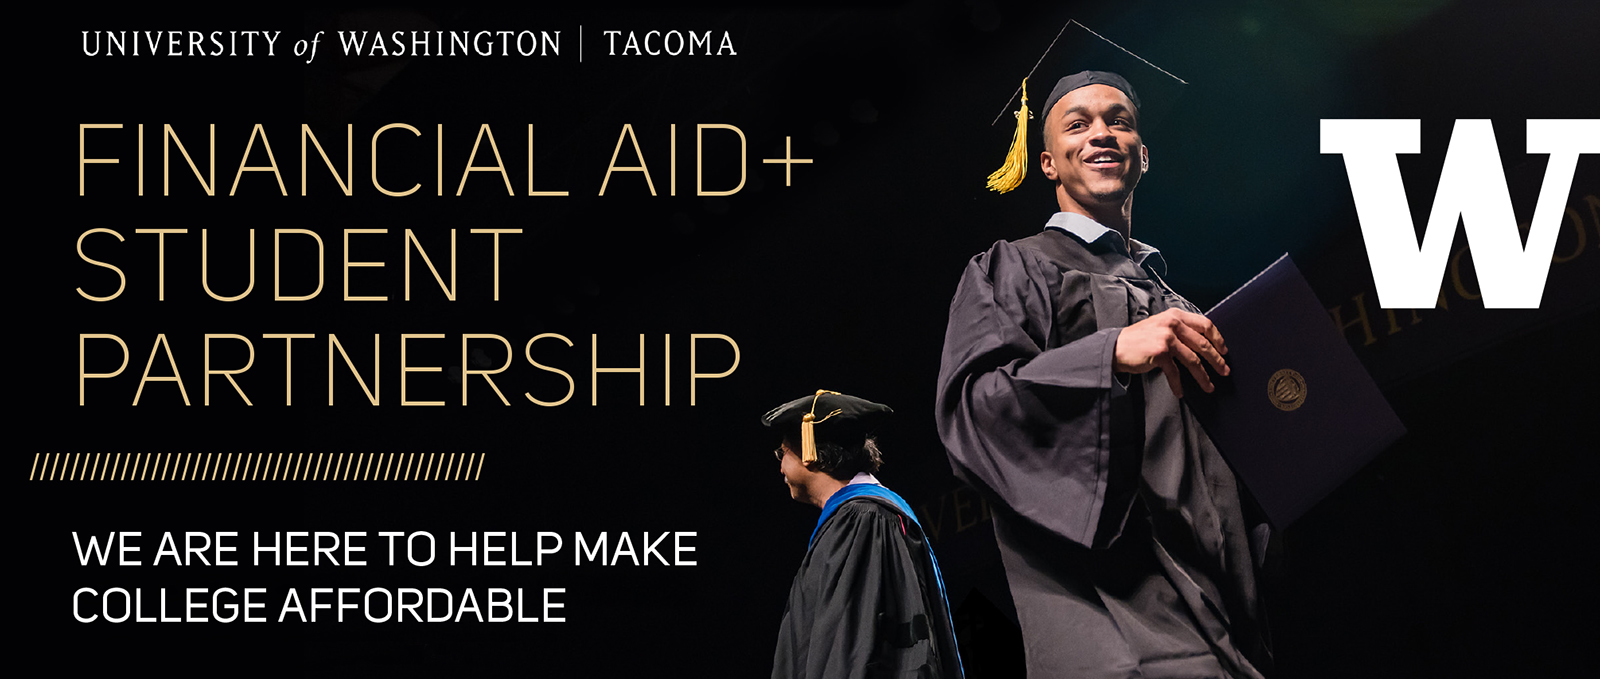 Financial Aid + Student Partnership